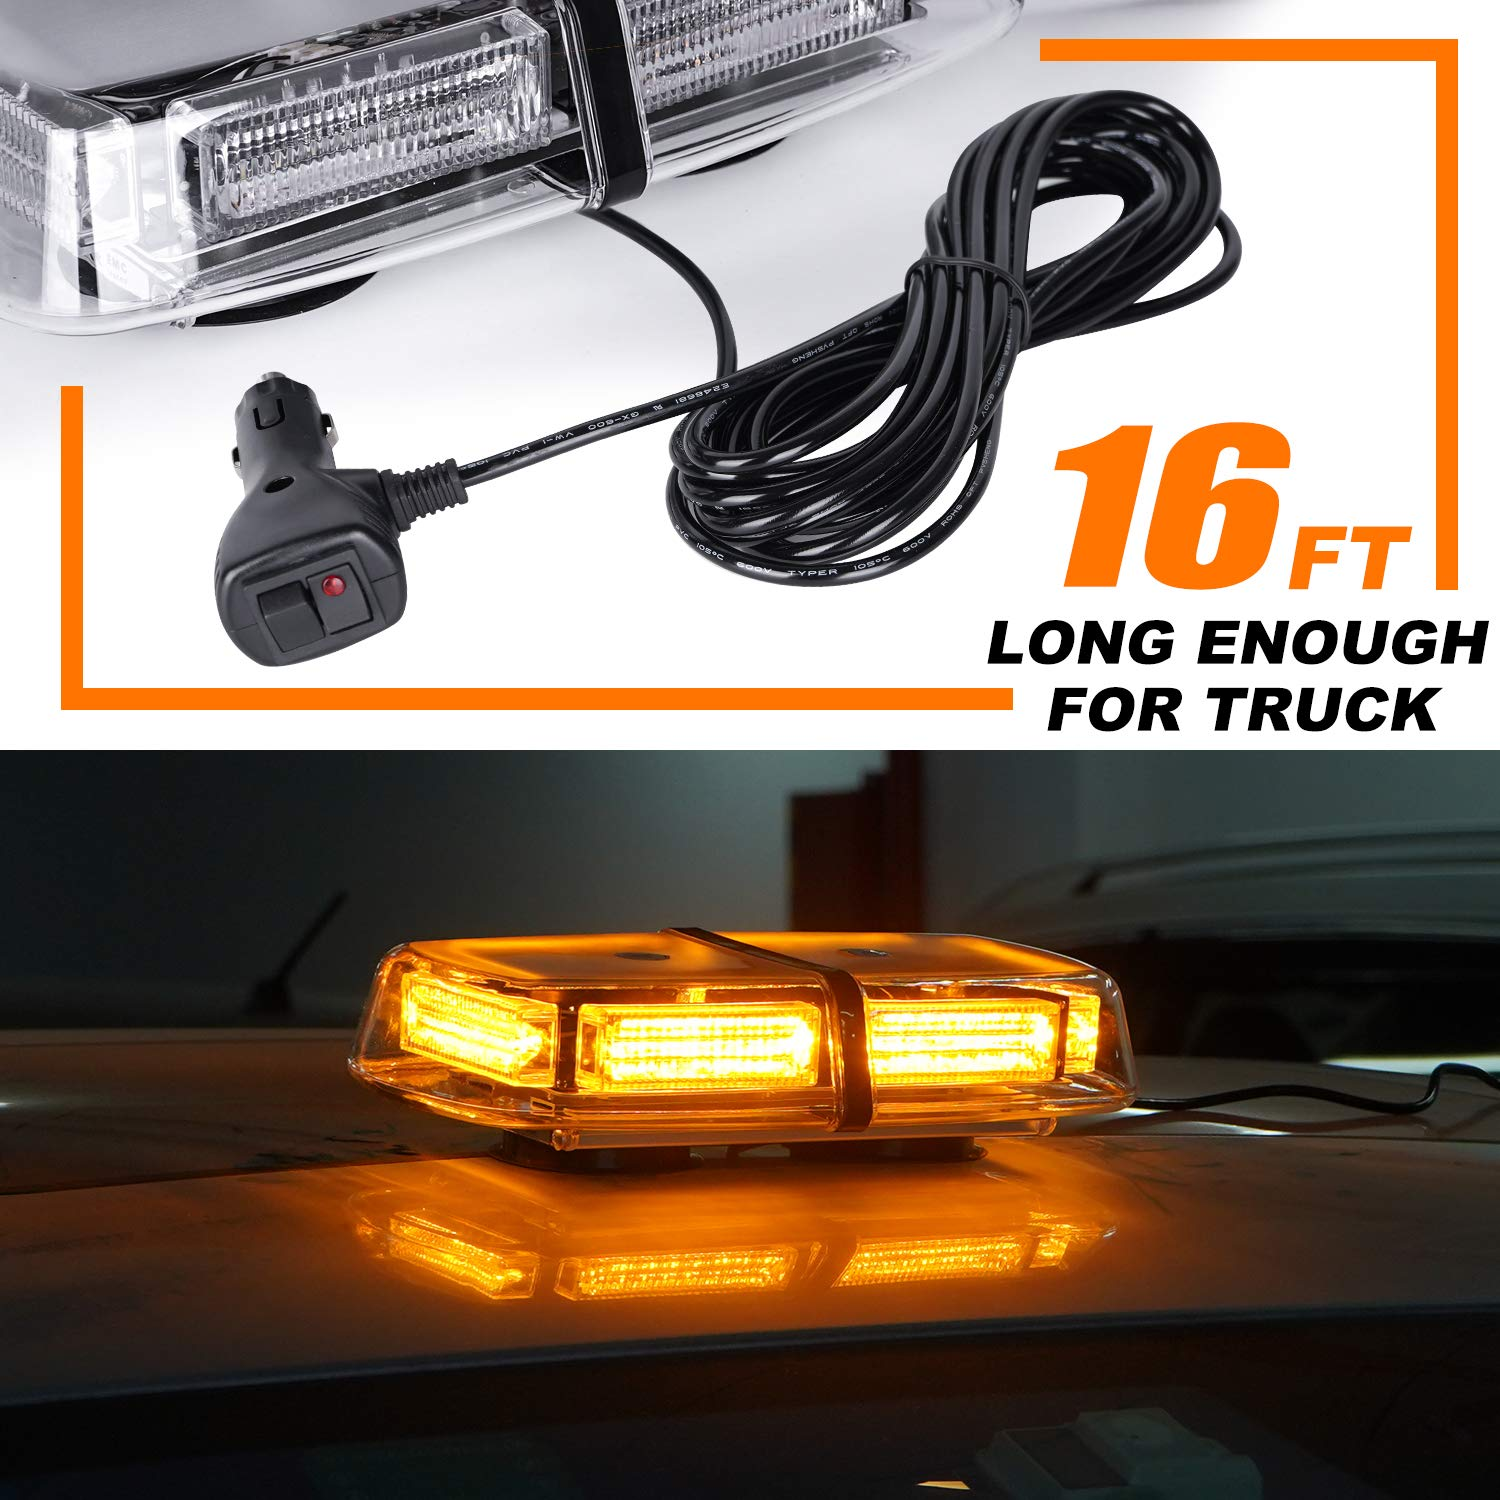 VKGAT 48 LED Roof Top Strobe Lights Amber Emergency Hazard Warning Safety Flashing LED Mini Bar Strobe Light for Truck Car Snow Plow Vehicles Waterproof and Magnetic Mount